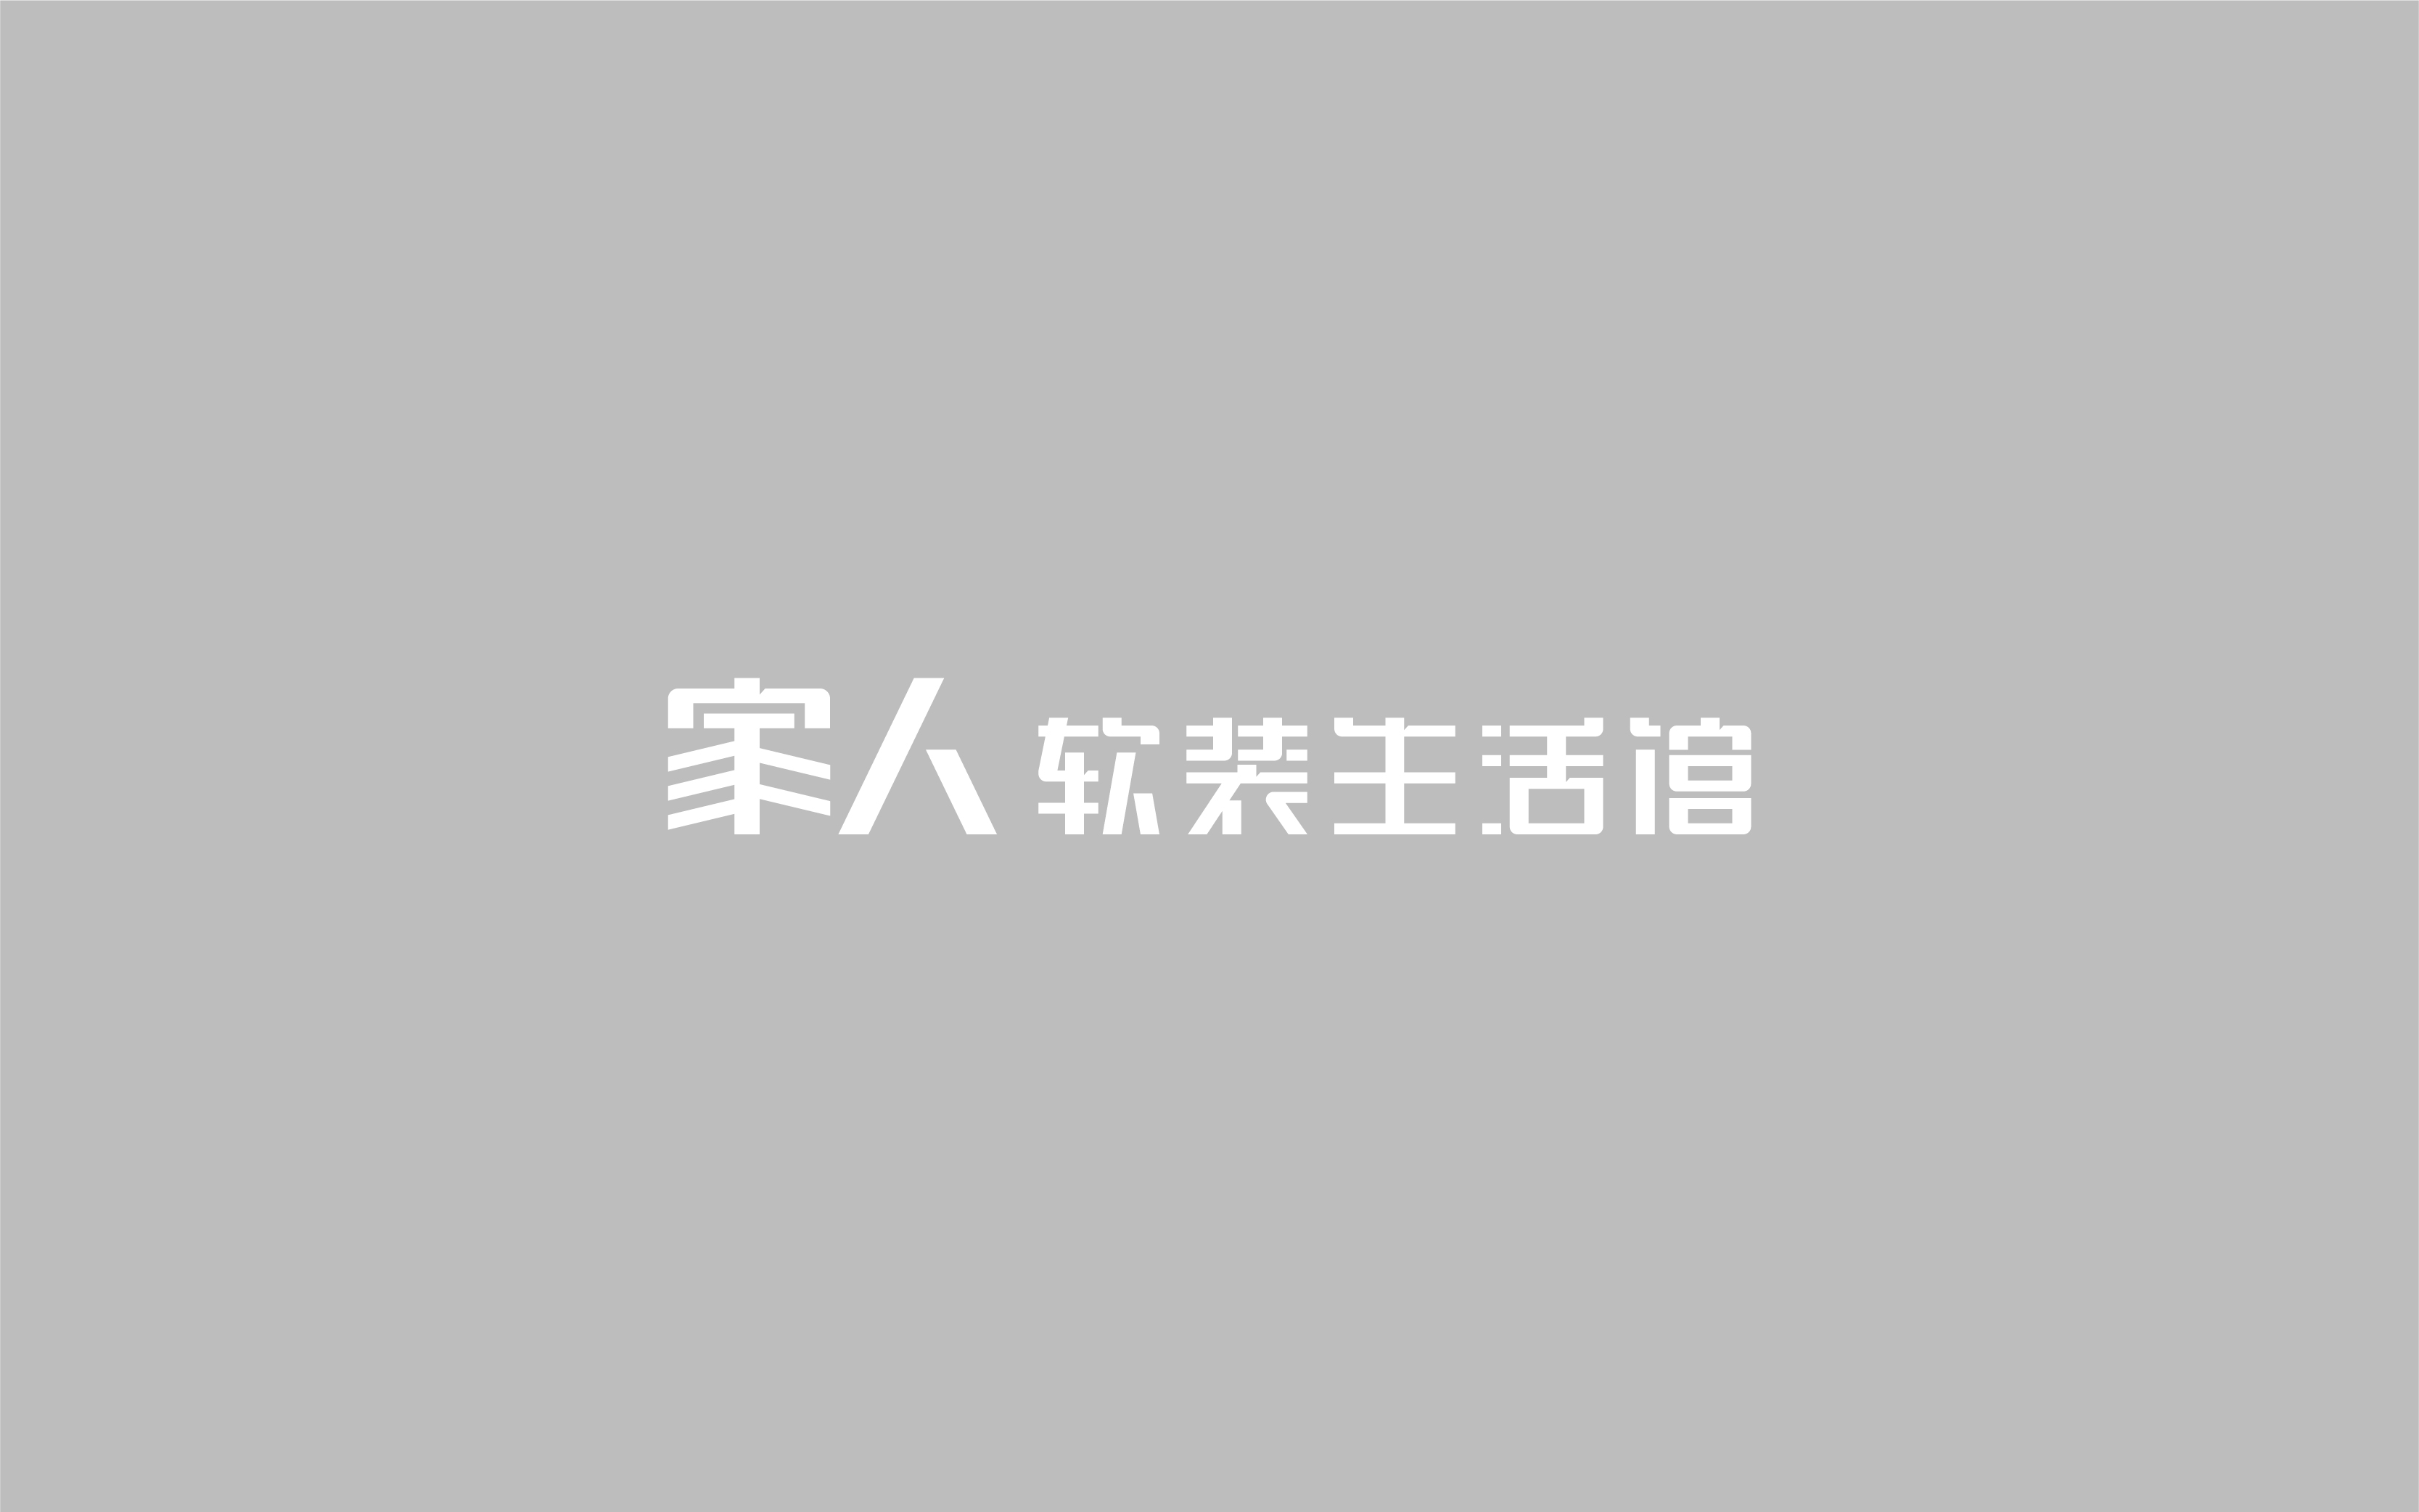 Interesting Chinese Creative Font Design-Soft-mounted life house